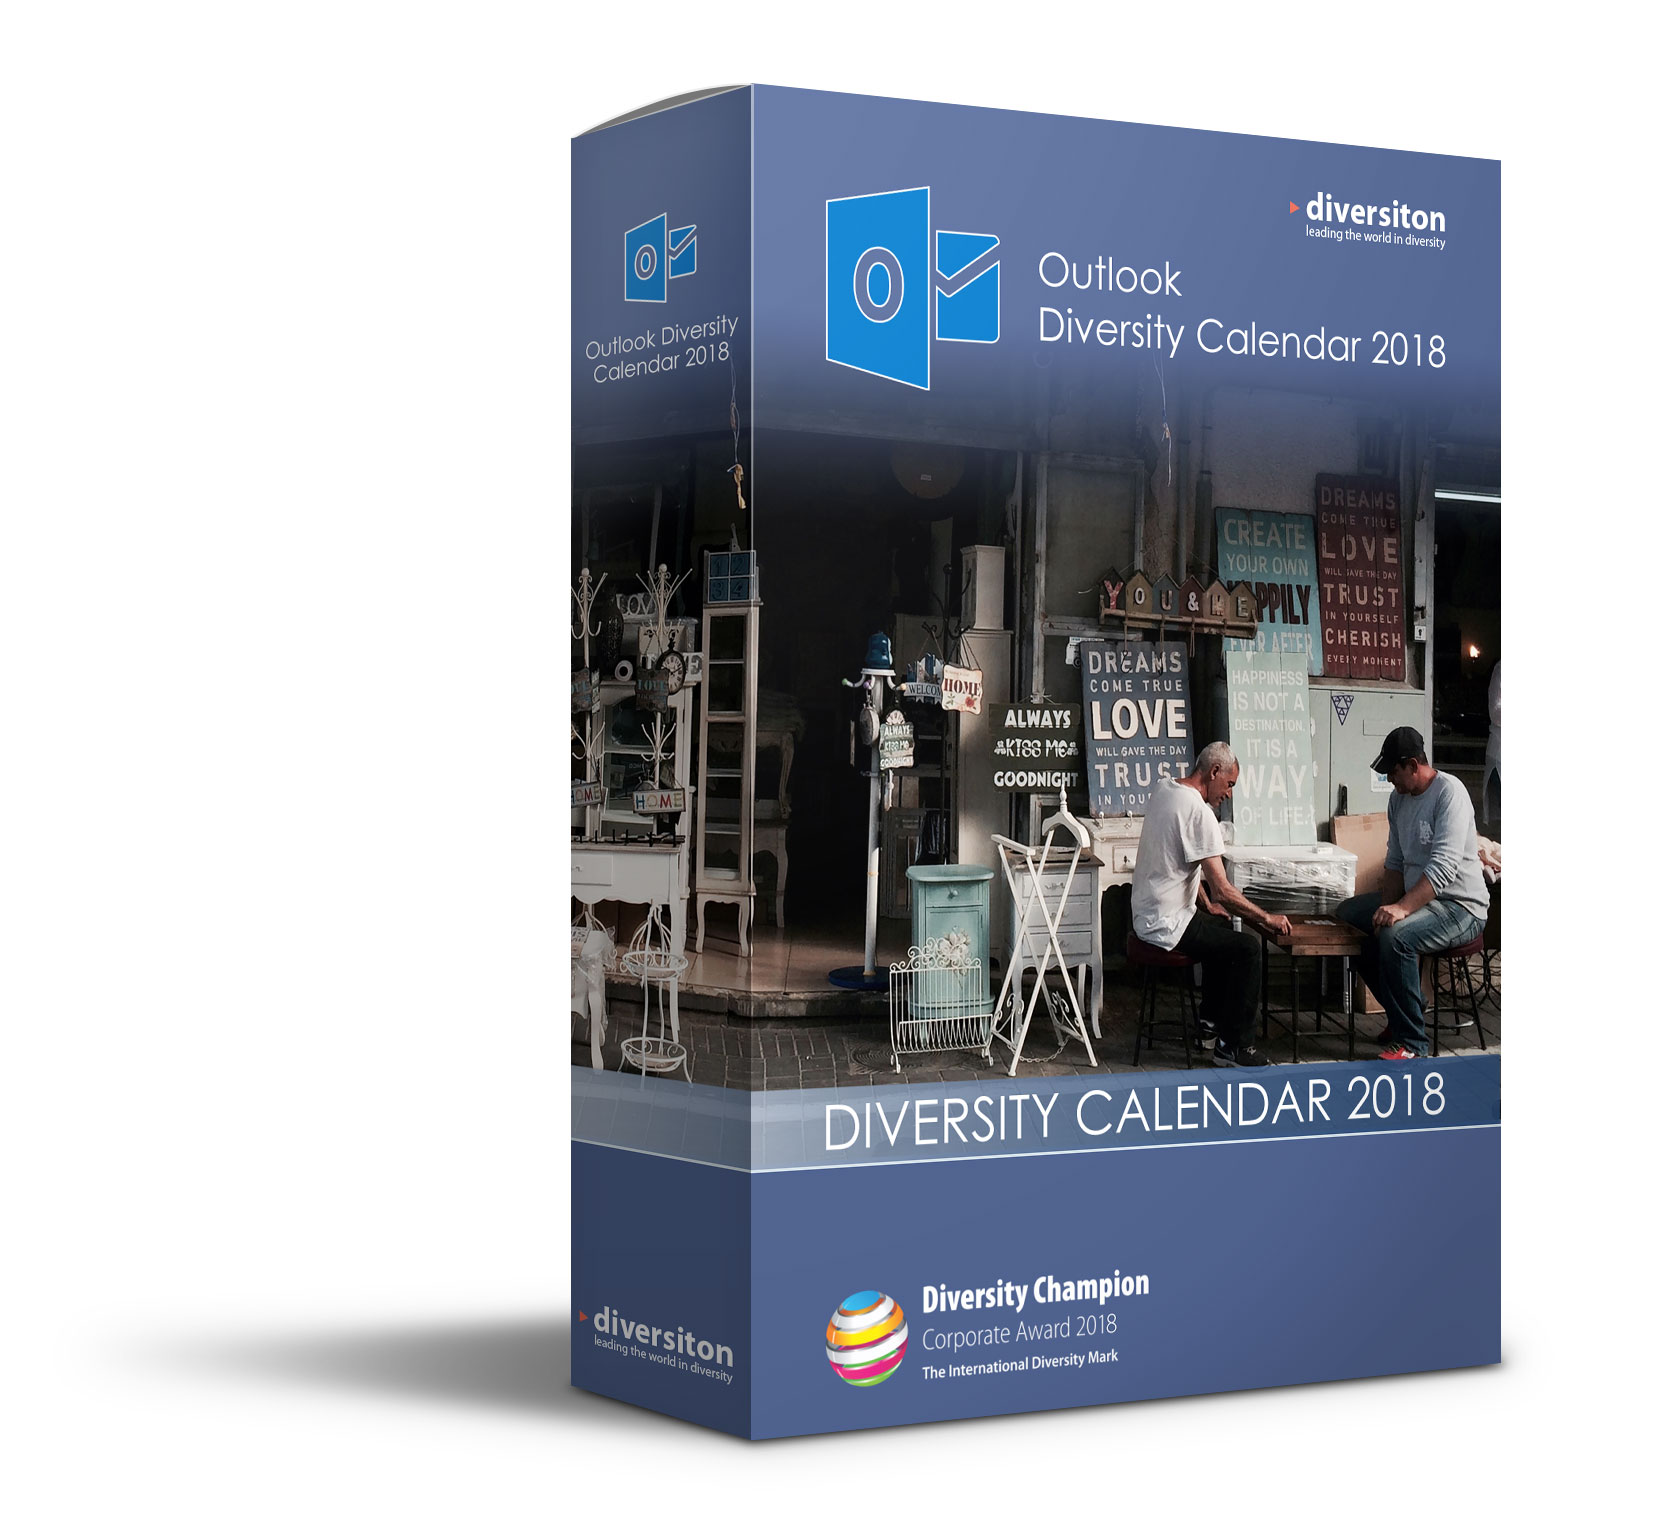 Outlook-Diversity-Calendar-2018